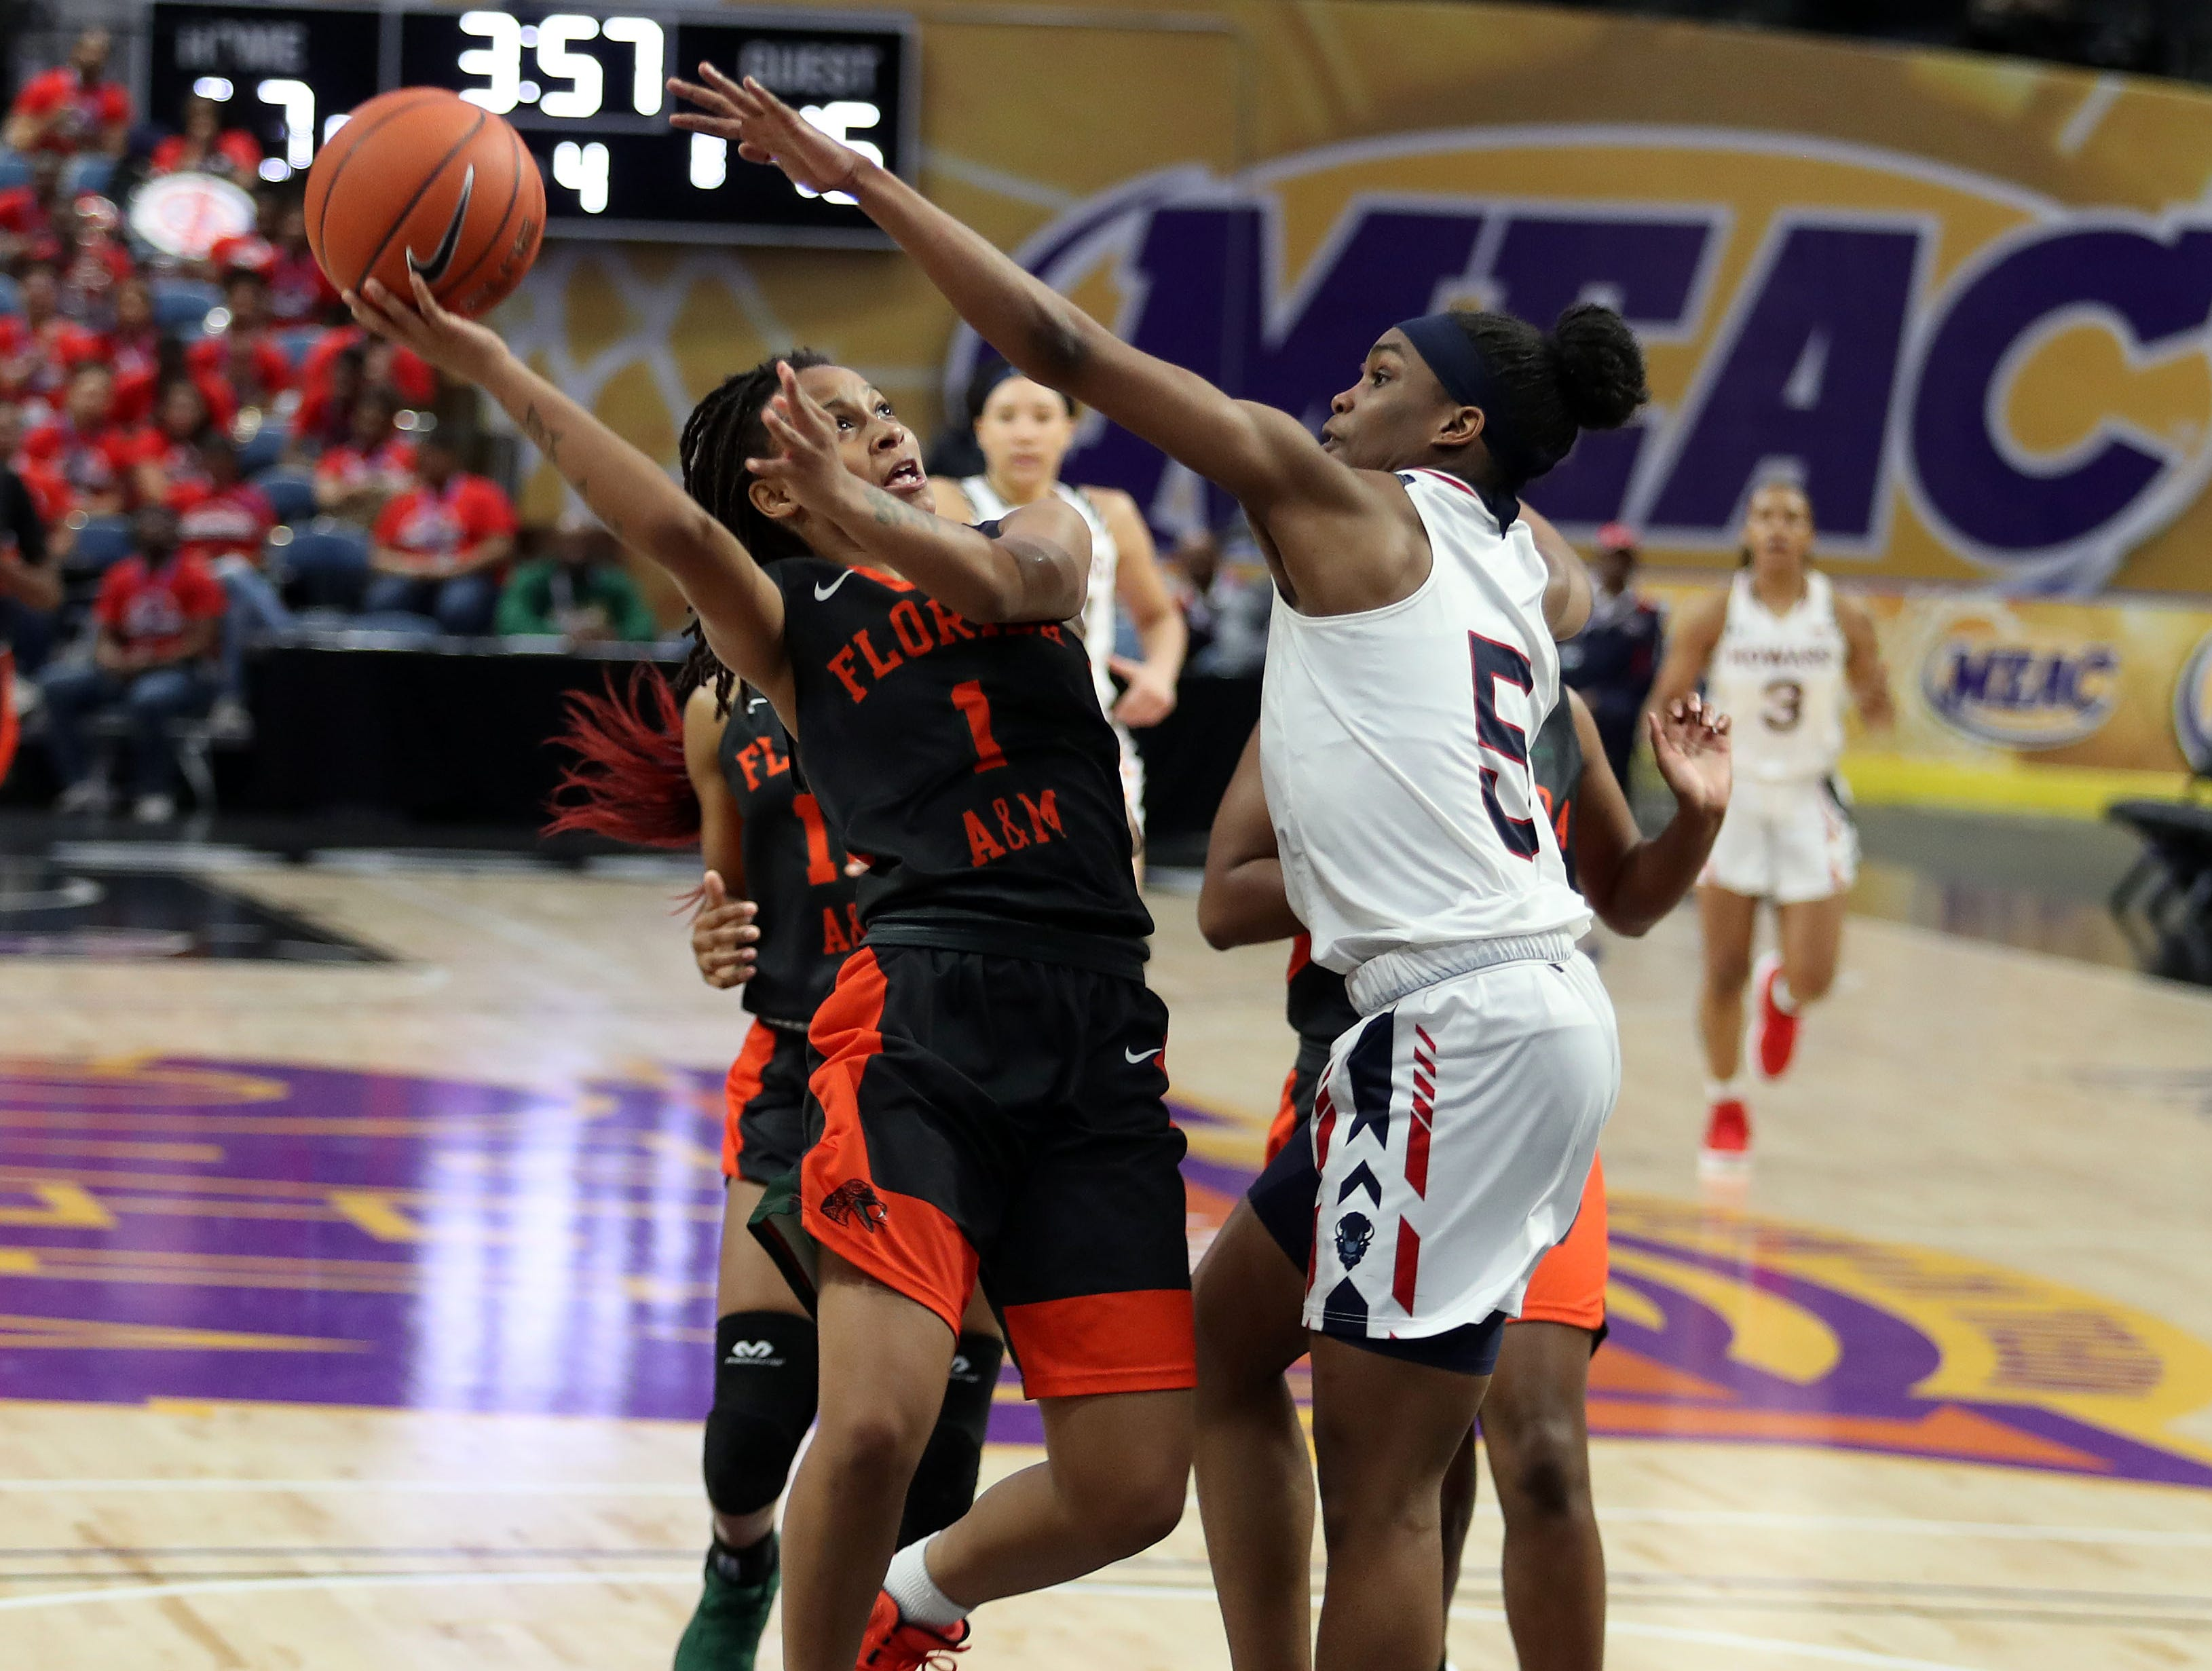 FAMU freshman Mya Moye shoots over Sarah Edmond of Howard in the first round of the MEAC tournament on Monday, March 11, 2019.